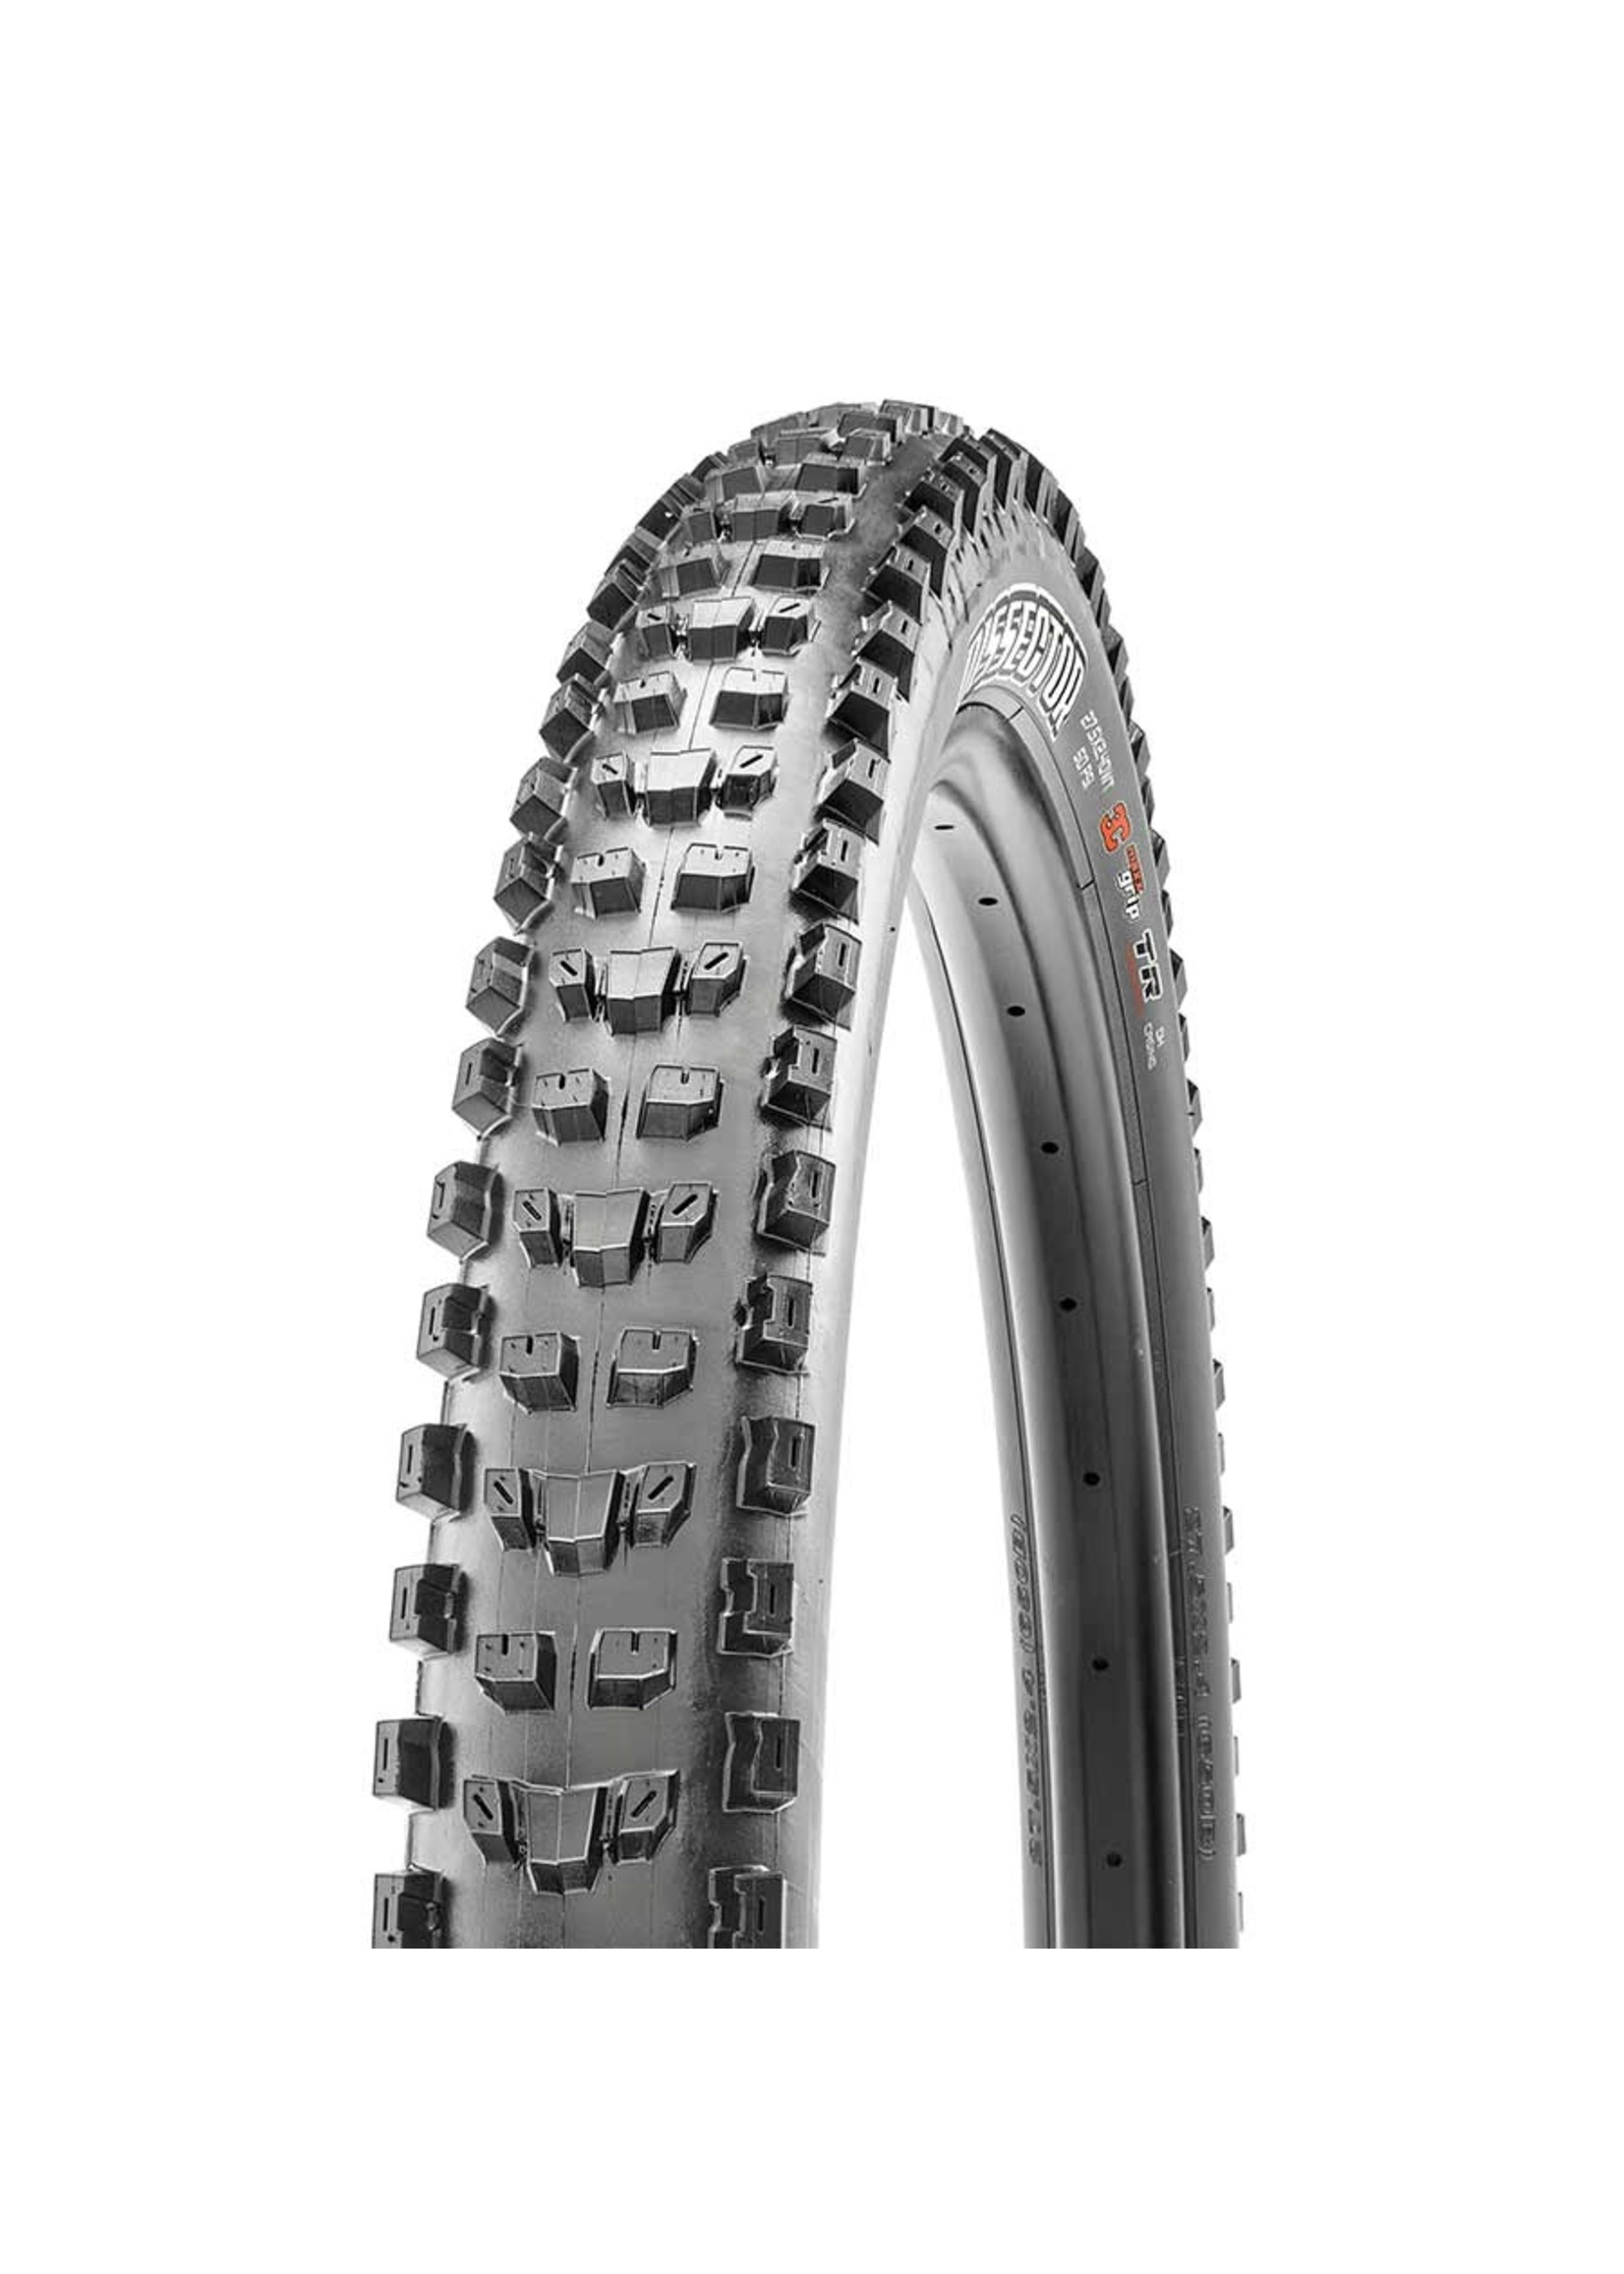 Maxxis Maxxis, Dissector, Tire, 27.5''x2.40, Folding, Tubeless Ready, 3C Maxx Grip, Double Down, Wide Trail, 120TPI, Black